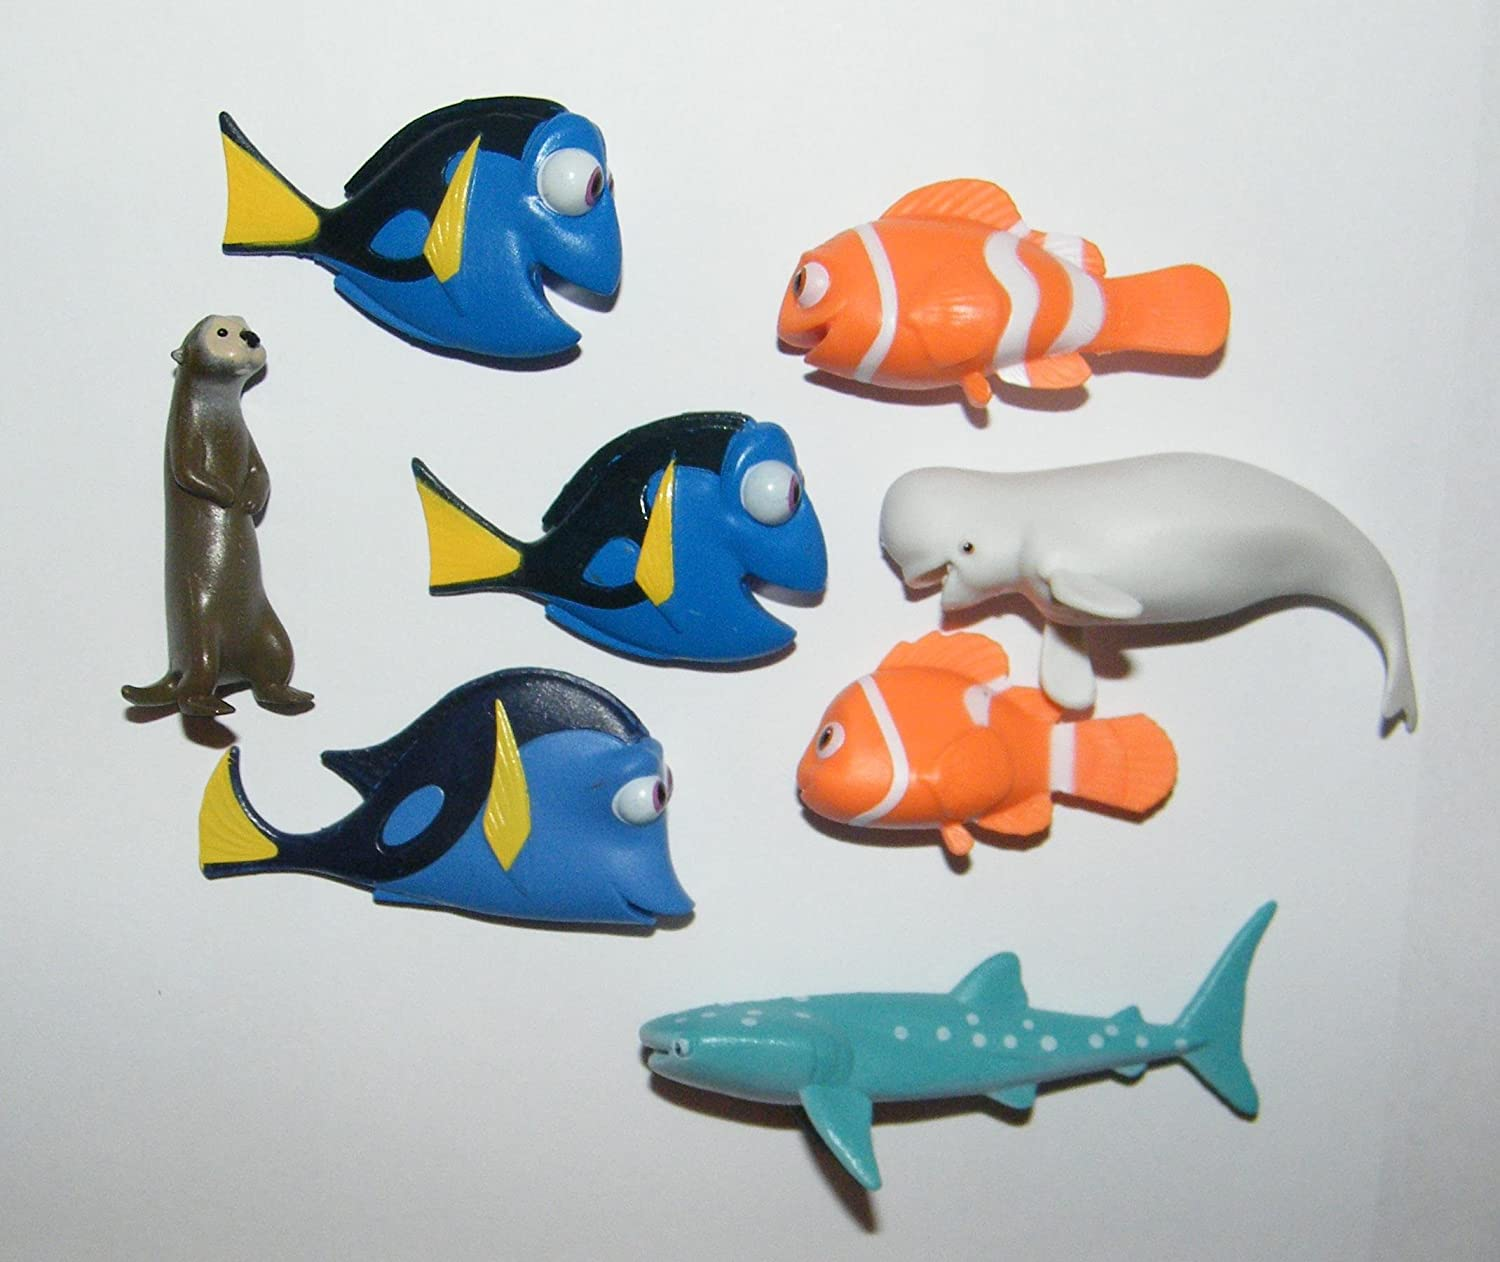 Nemo and Mnay More! a Sticker Sheet Disney Finding Dory Deluxe Mini Cake Toppers Cupcake Decorations Set of 14 with Figures ToyRing Featuring Dory